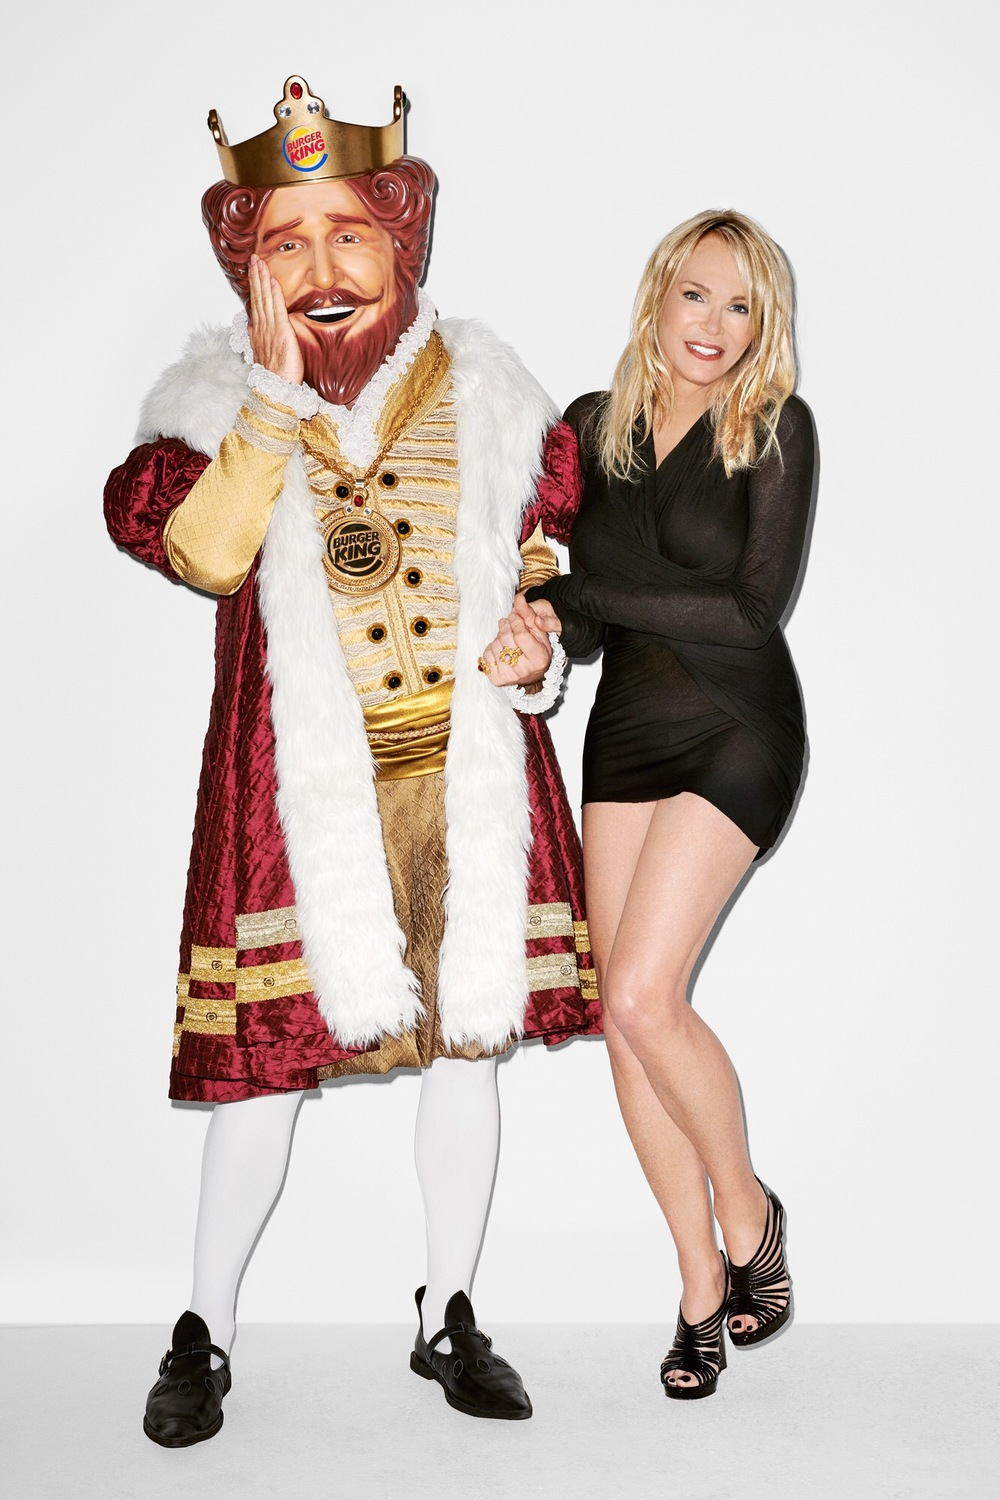 Terry Richardson photo shoot for Burger King campaign